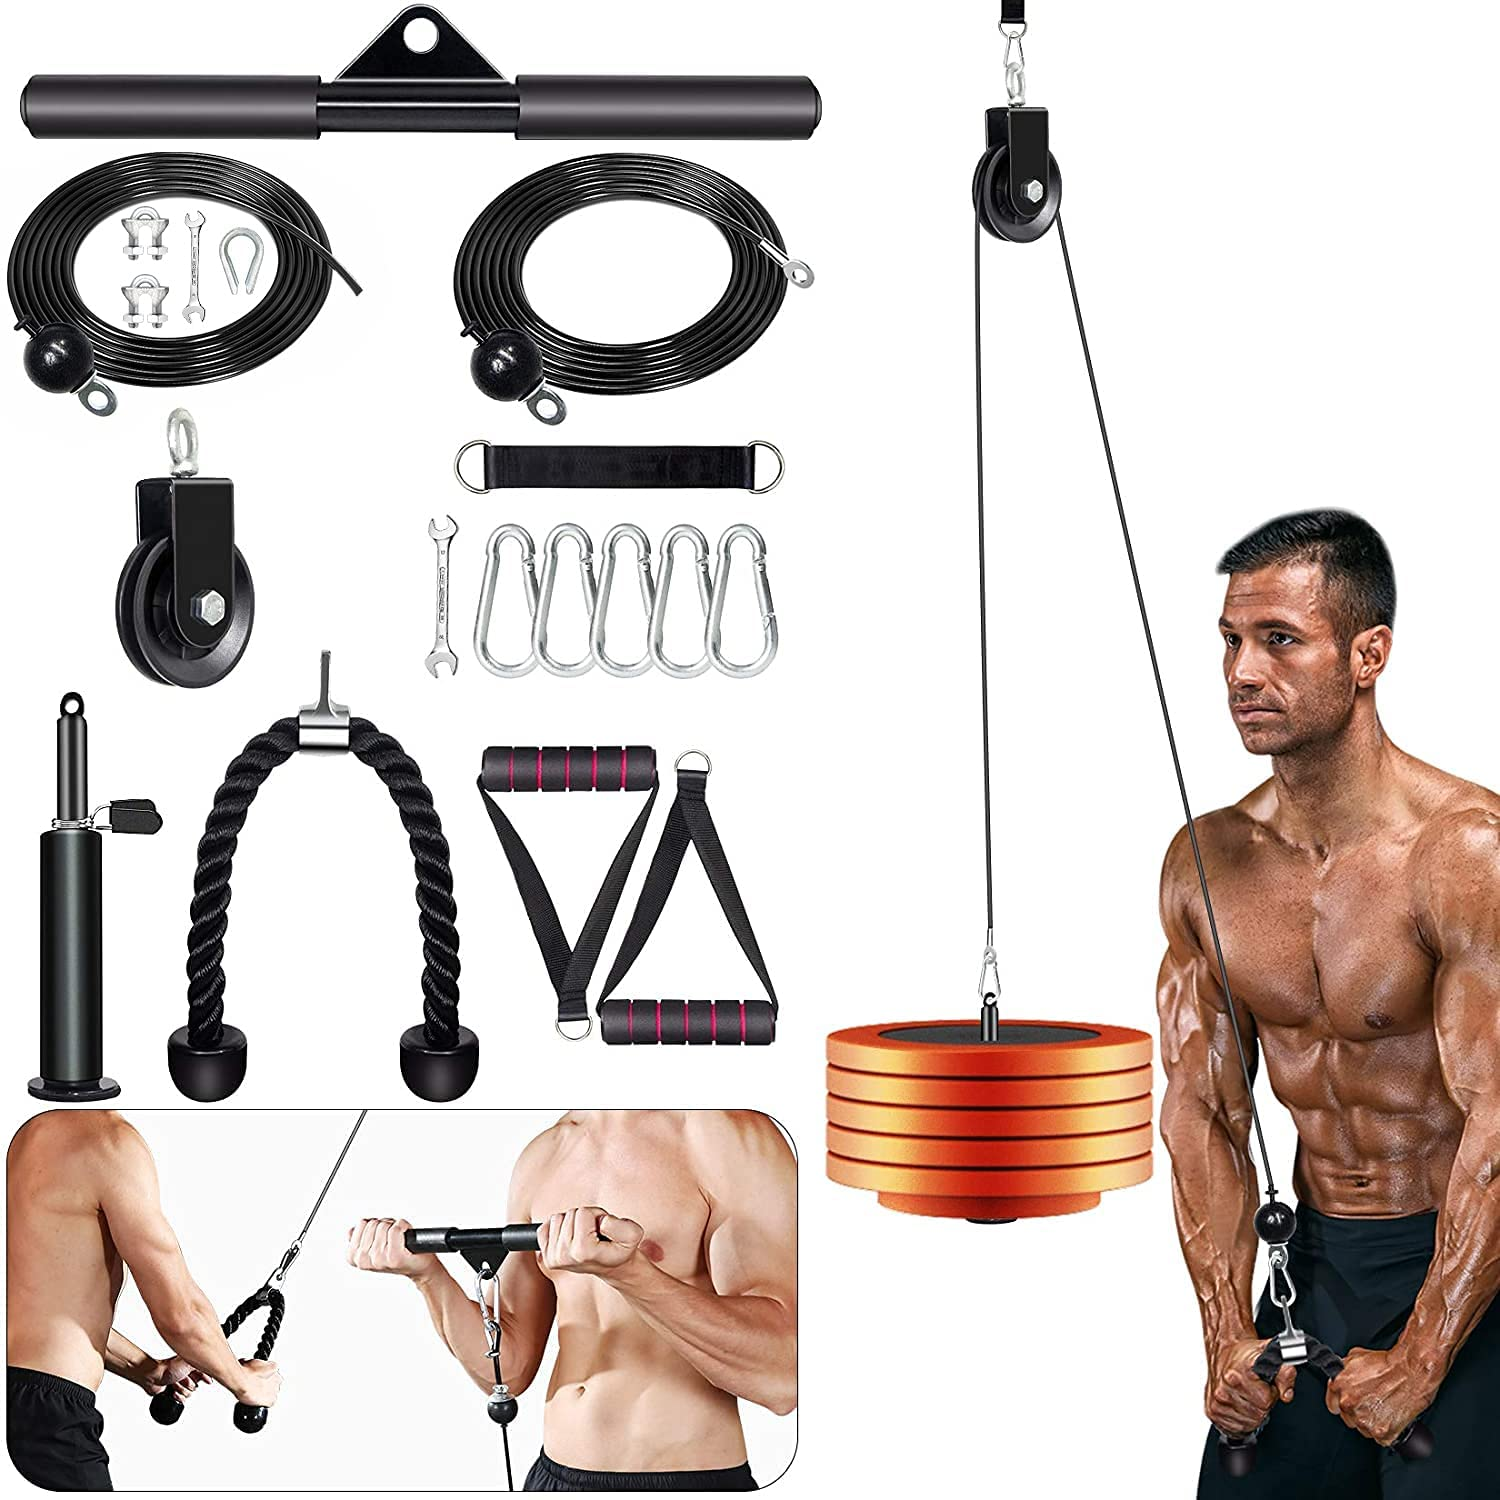 Outify Pulley System Gym, LAT Pull Down Machine with 2 Adjustable Cable Pulley Attachments for Gym, 3 in 1 Triceps Pulley Cable Machine System, LAT Bar, Fitness Home Gym Workout Equipment(17 Pieces)